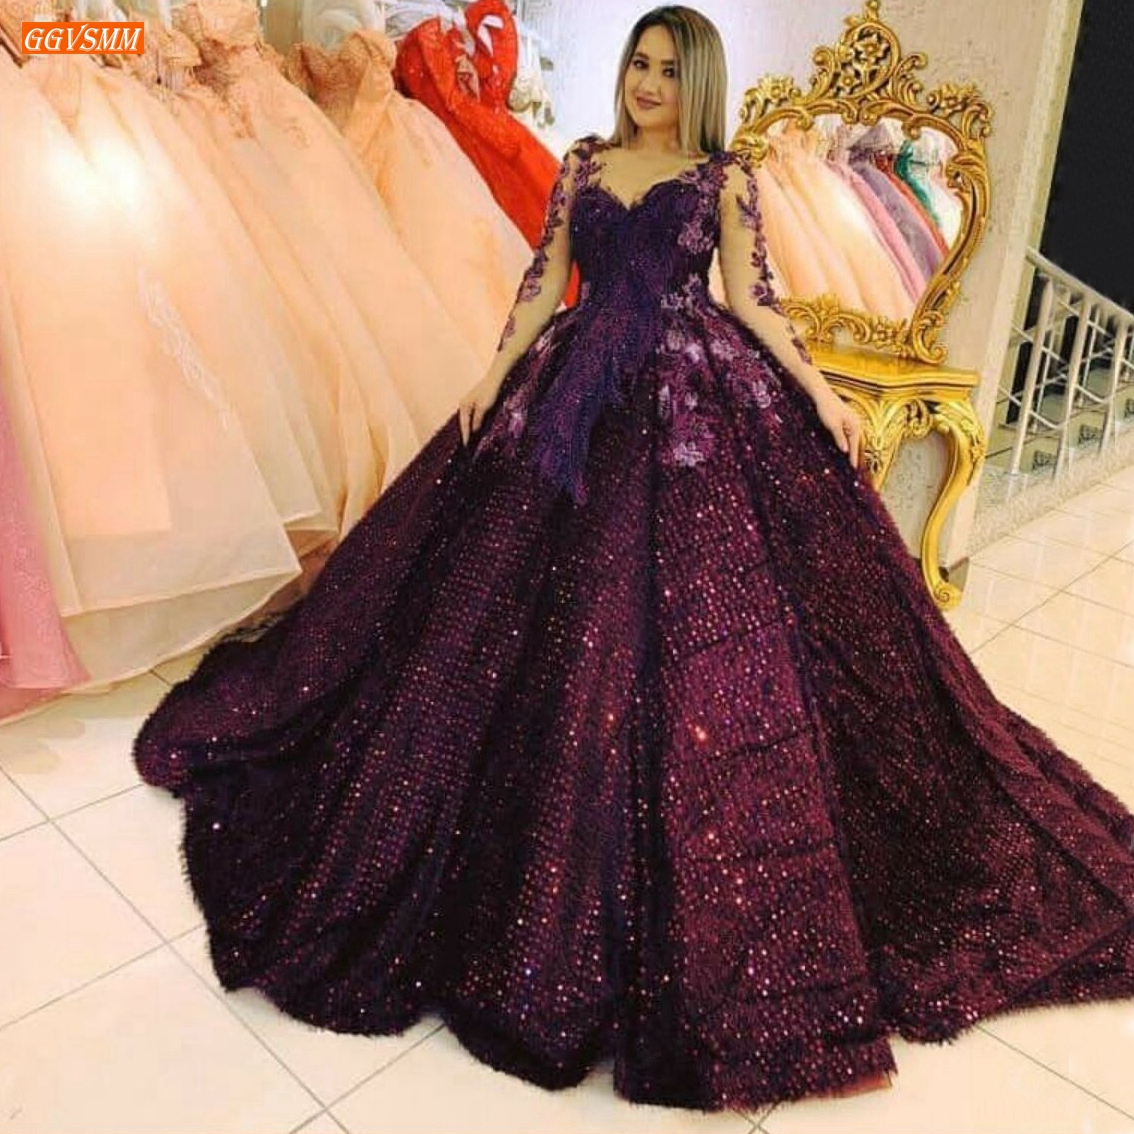 Luxury Burgundy Evening Gowns Long Sleeves Sequined Ball Gown Sexy Women Party Dresses Formal Custom Made 2020 Vestido De Festa